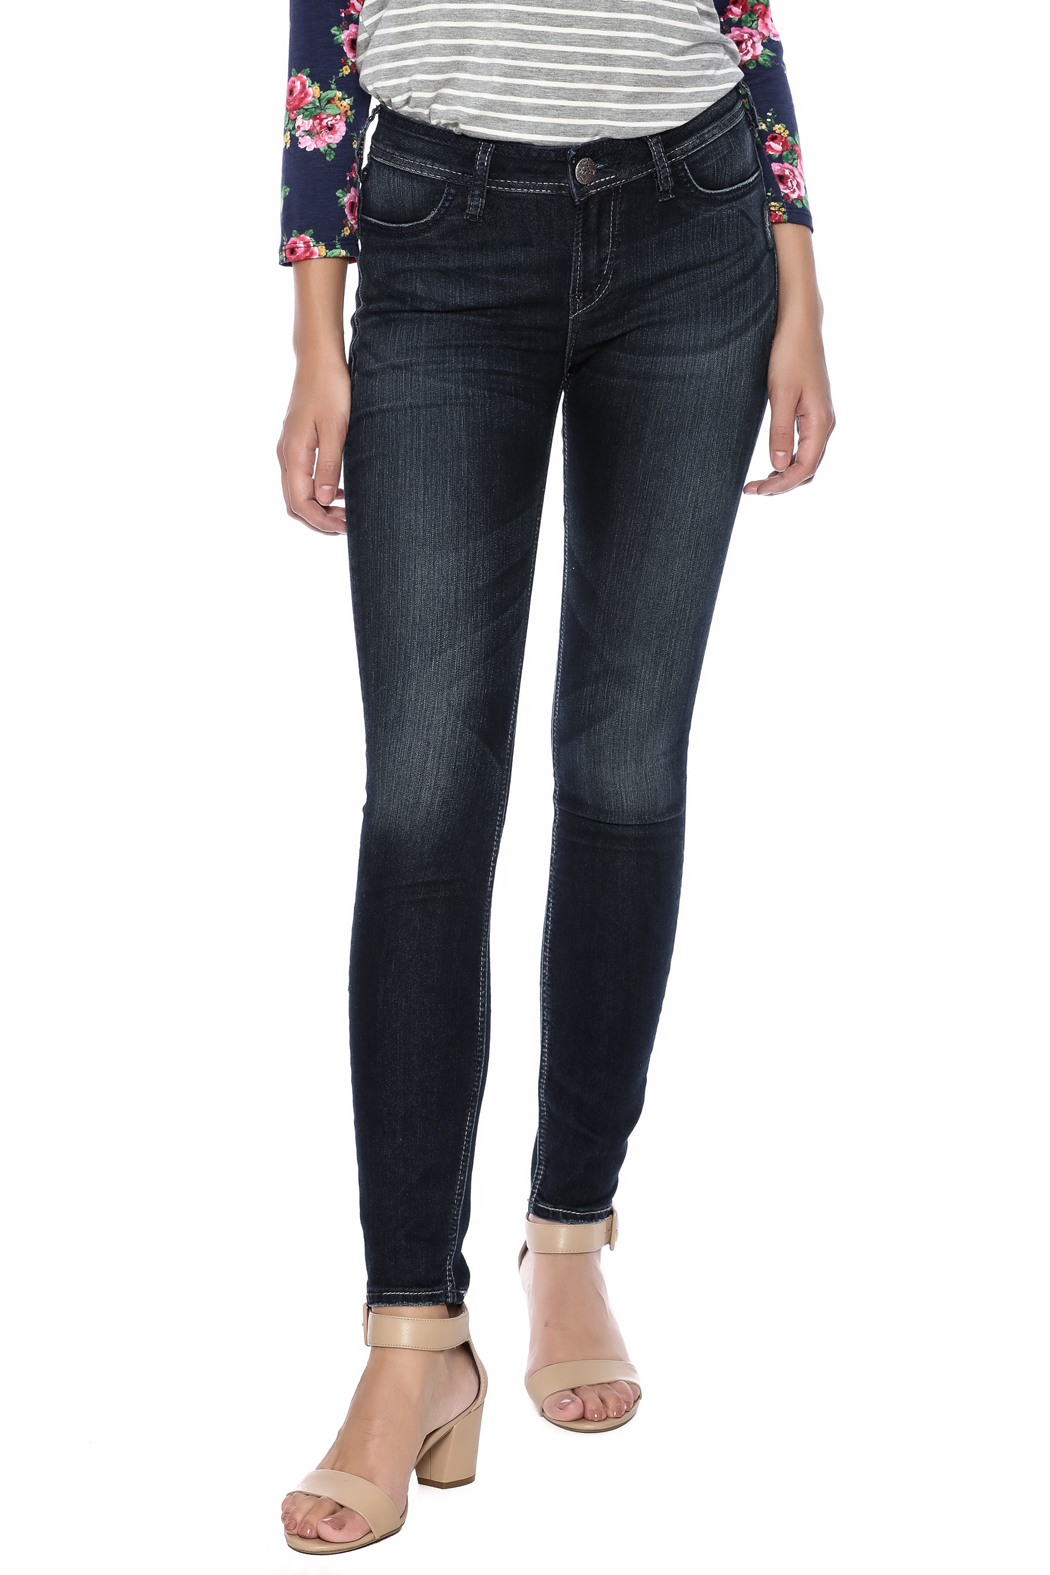 Silver Jeans Co. Suki Jeggings - Main Image